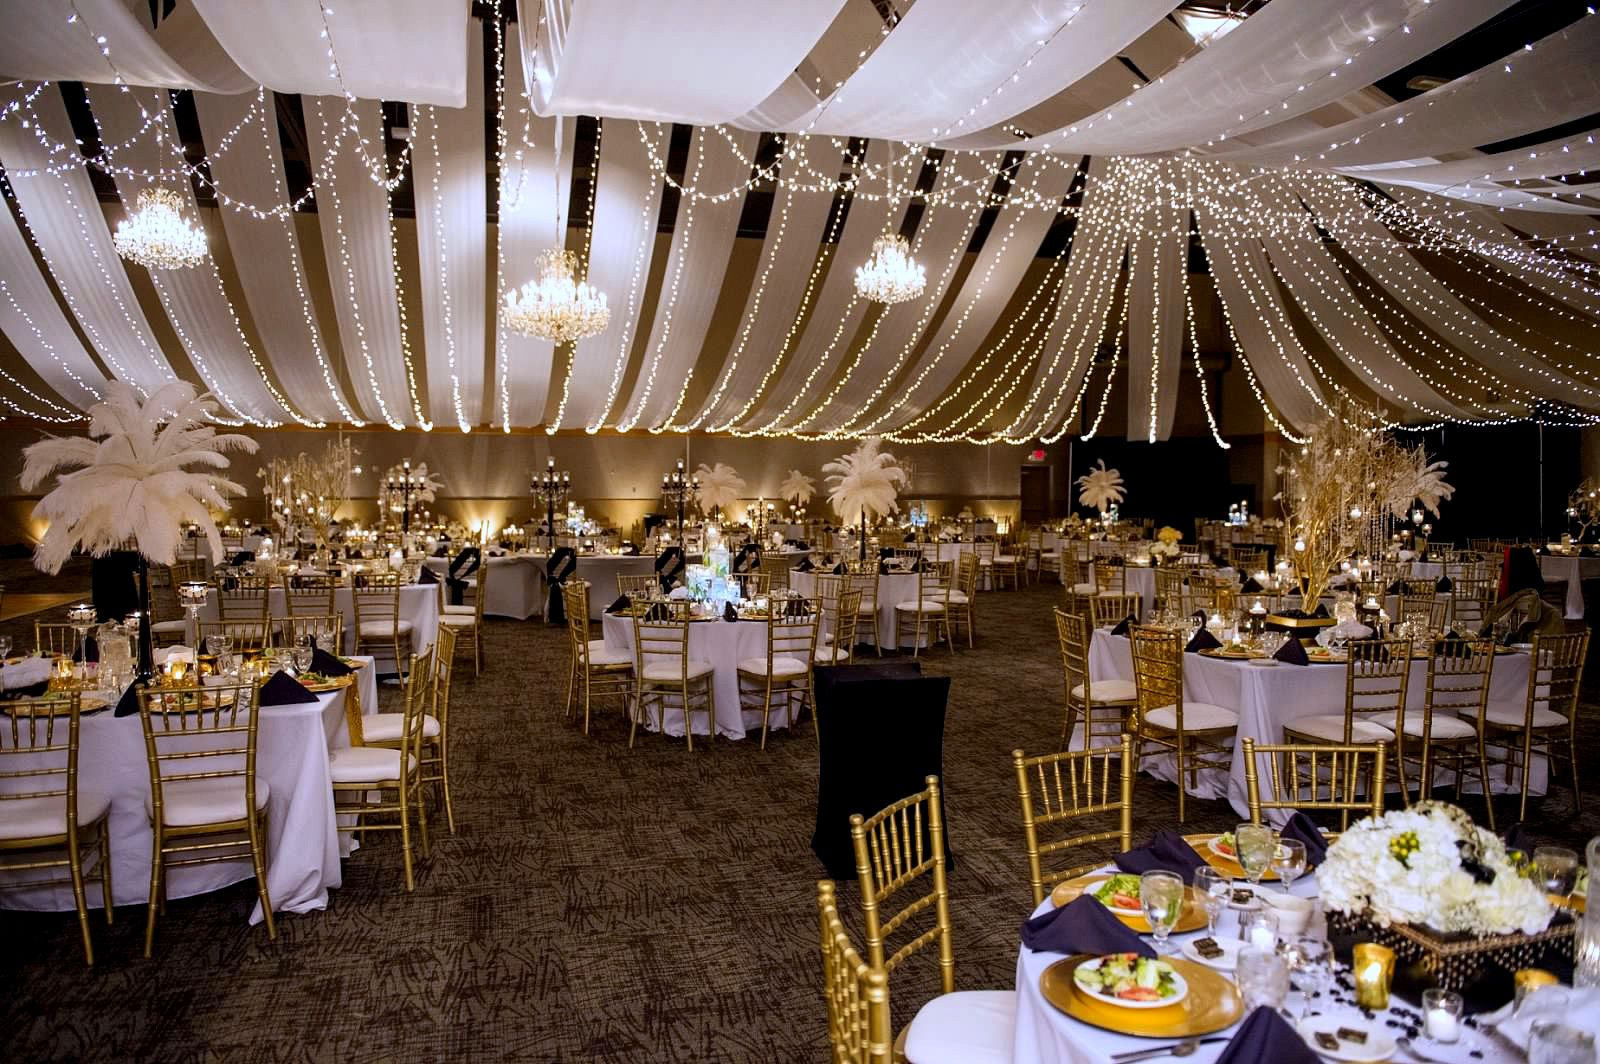 the great gatsby wedding of dreams   great gatsby themed